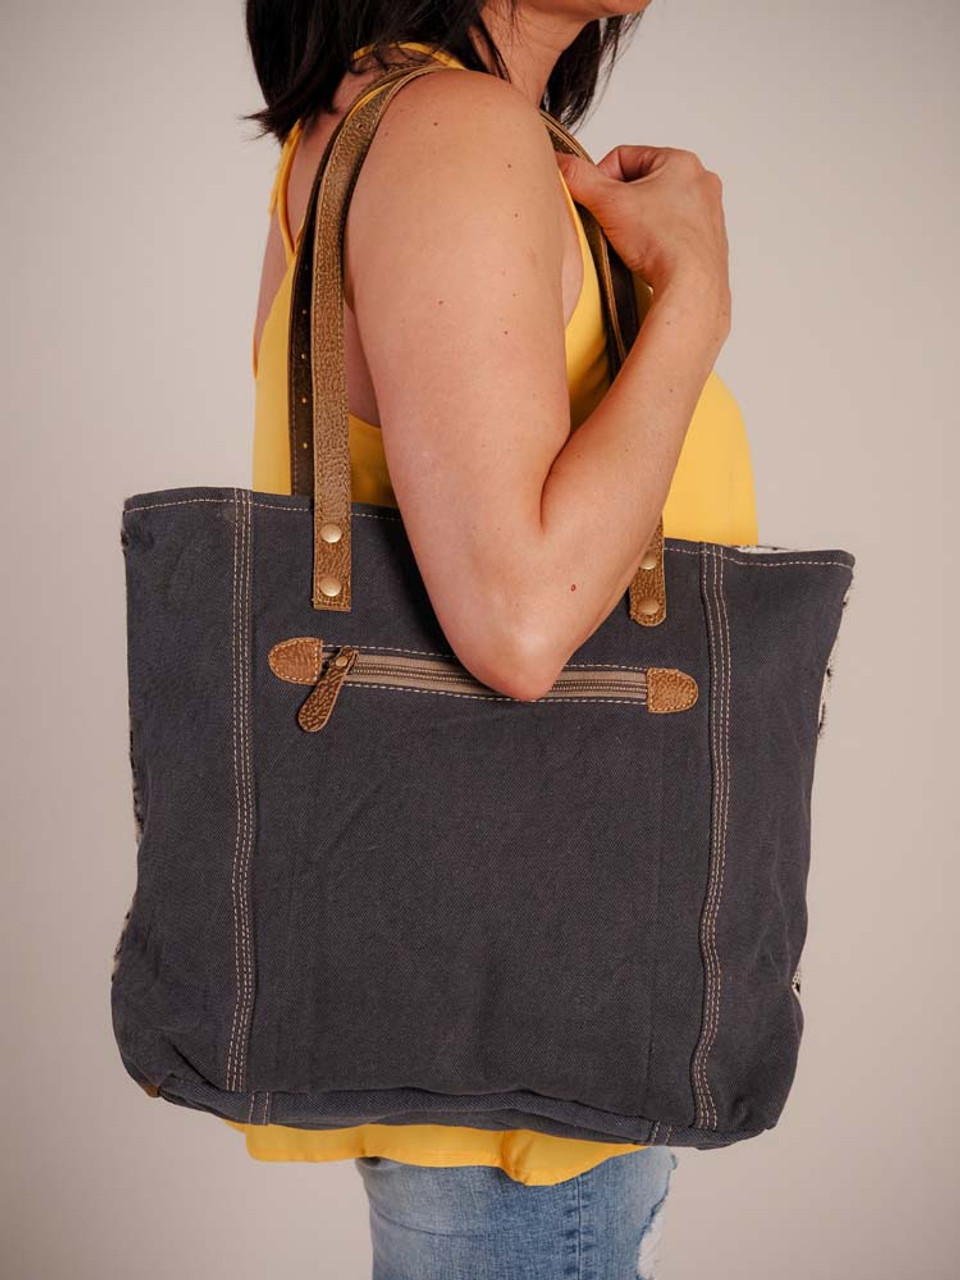 Whimsical combination of handwoven pattern in the front with snake pattern on the side. Leather details; hairon accents on sides of front; canvas back and bottom; zipper pocket on back; leather shoulder straps; zipper close; fully lined inside with a zipper pocket and two slip pockets